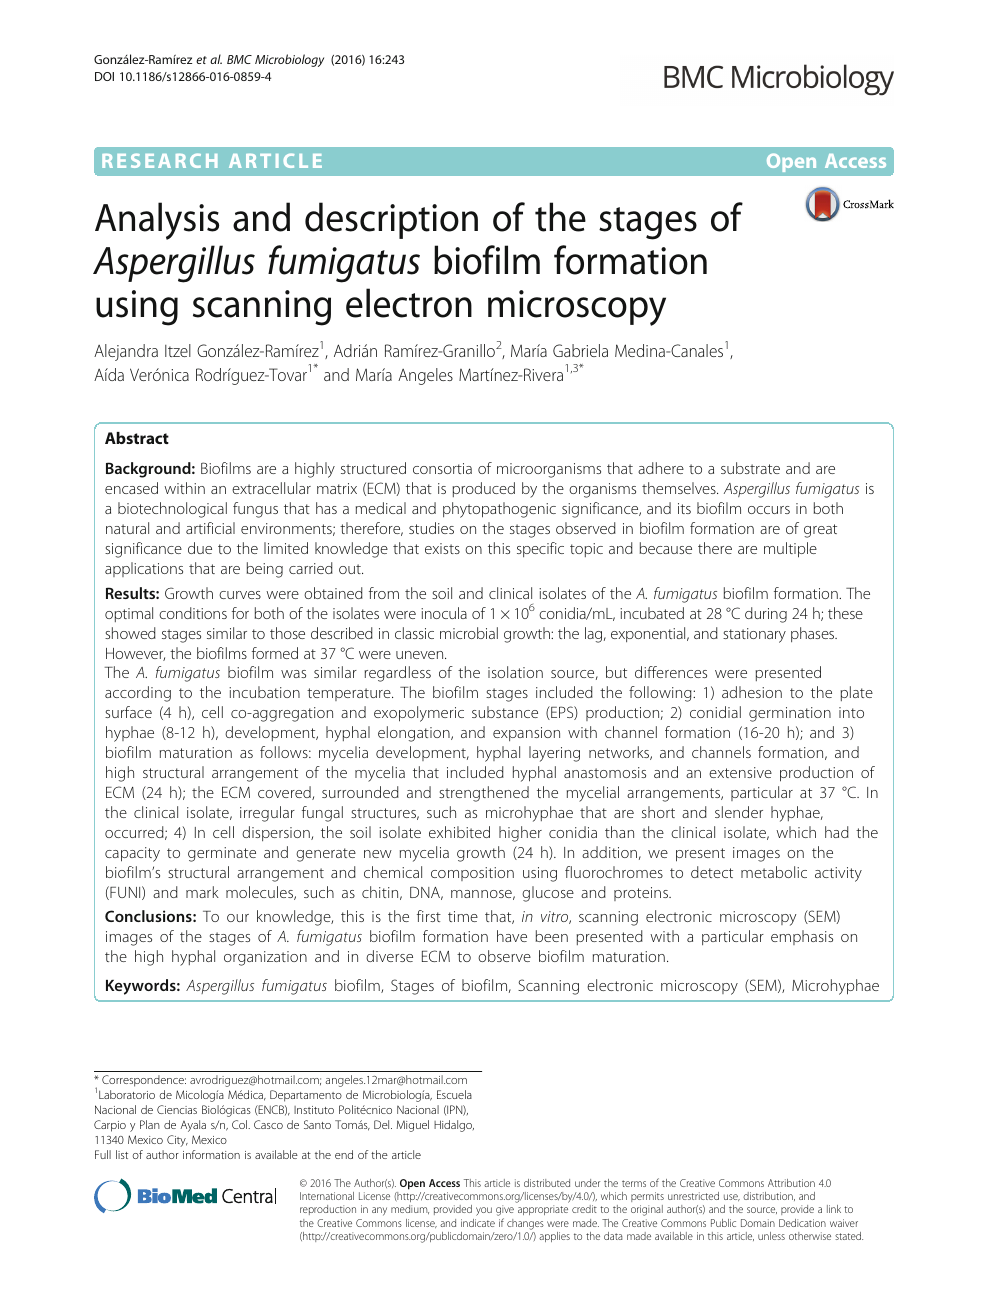 Analysis and description of the stages of Aspergillus